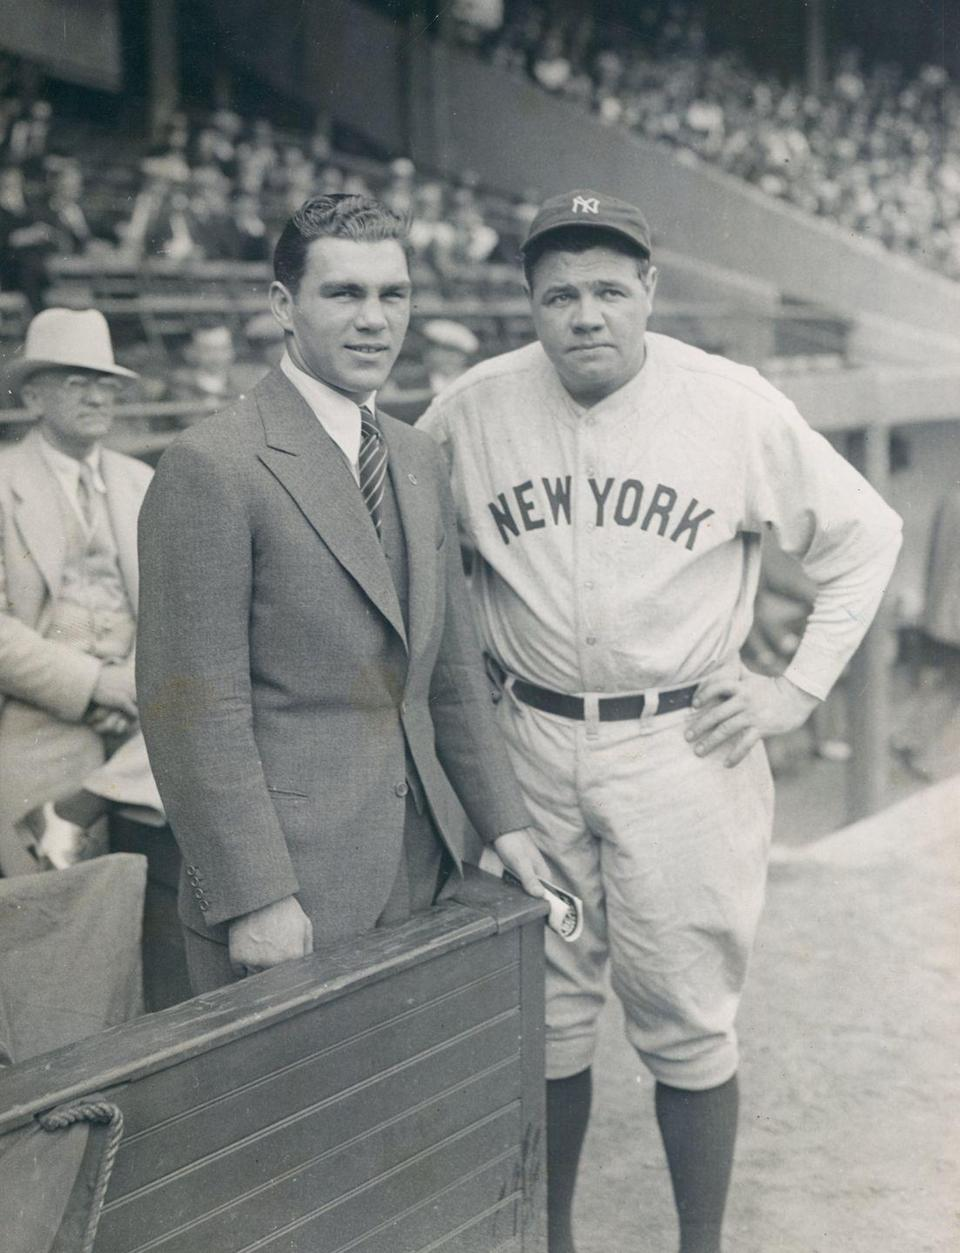 <p>Legendary Yankees like Babe Ruth and Lou Gerhig were stealing bases and American hearts that year. Ruth's real first name, George, was the No. 7 pick for boys, while Ruth was the No. 6 for girls. The top three? Still Robert, John, James, Mary, Dorothy, and Betty.</p>